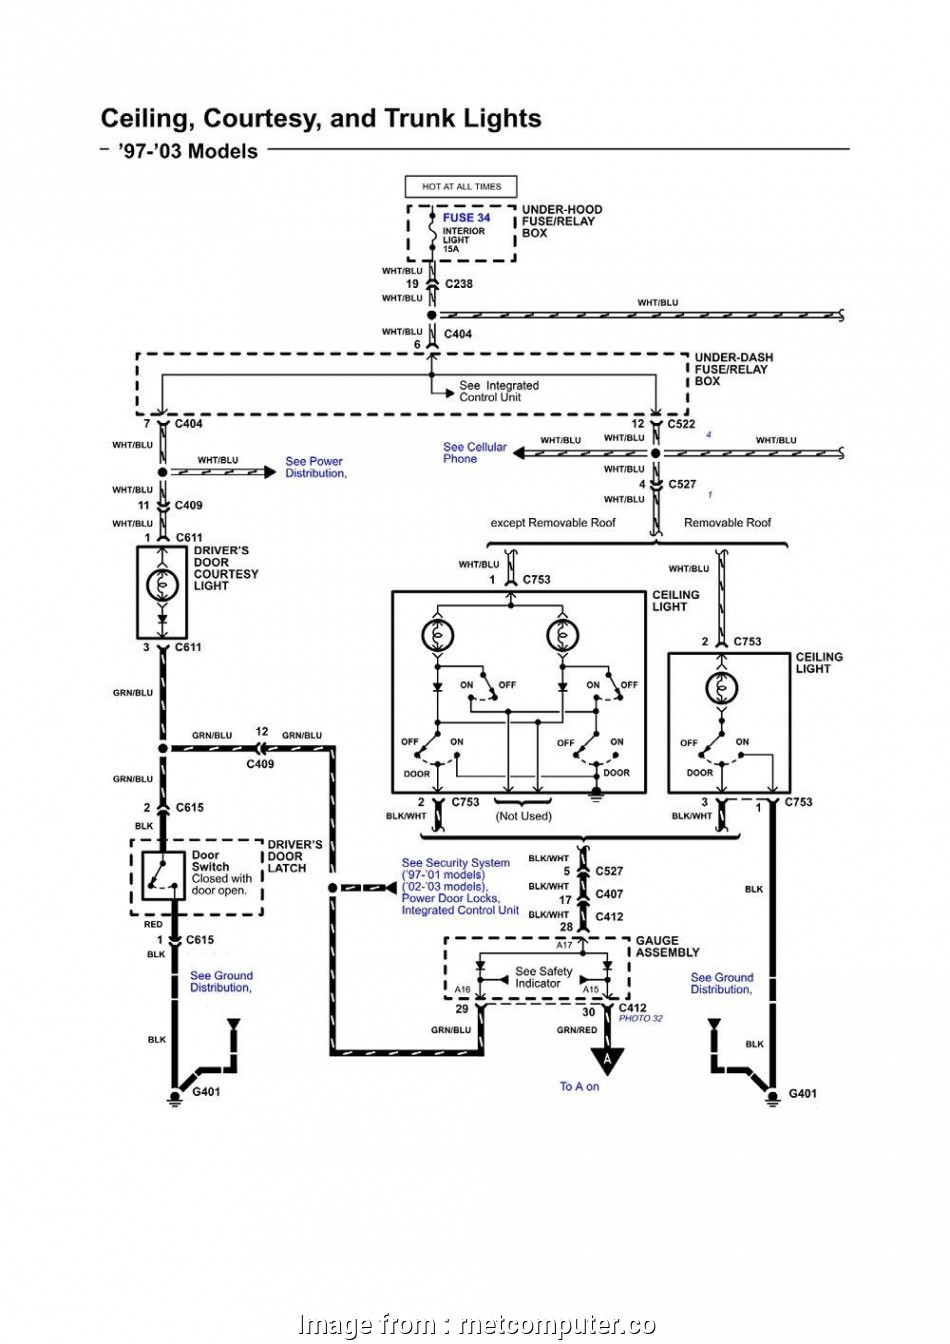 internal wiring diagram ceiling fan light saratoga harbor breeze, wiring diagram outstanding hunter ceiling rh releaseganji, hunter ceiling, internal Internal Wiring Diagram Ceiling, Light Best Saratoga Harbor Breeze, Wiring Diagram Outstanding Hunter Ceiling Rh Releaseganji, Hunter Ceiling, Internal Collections